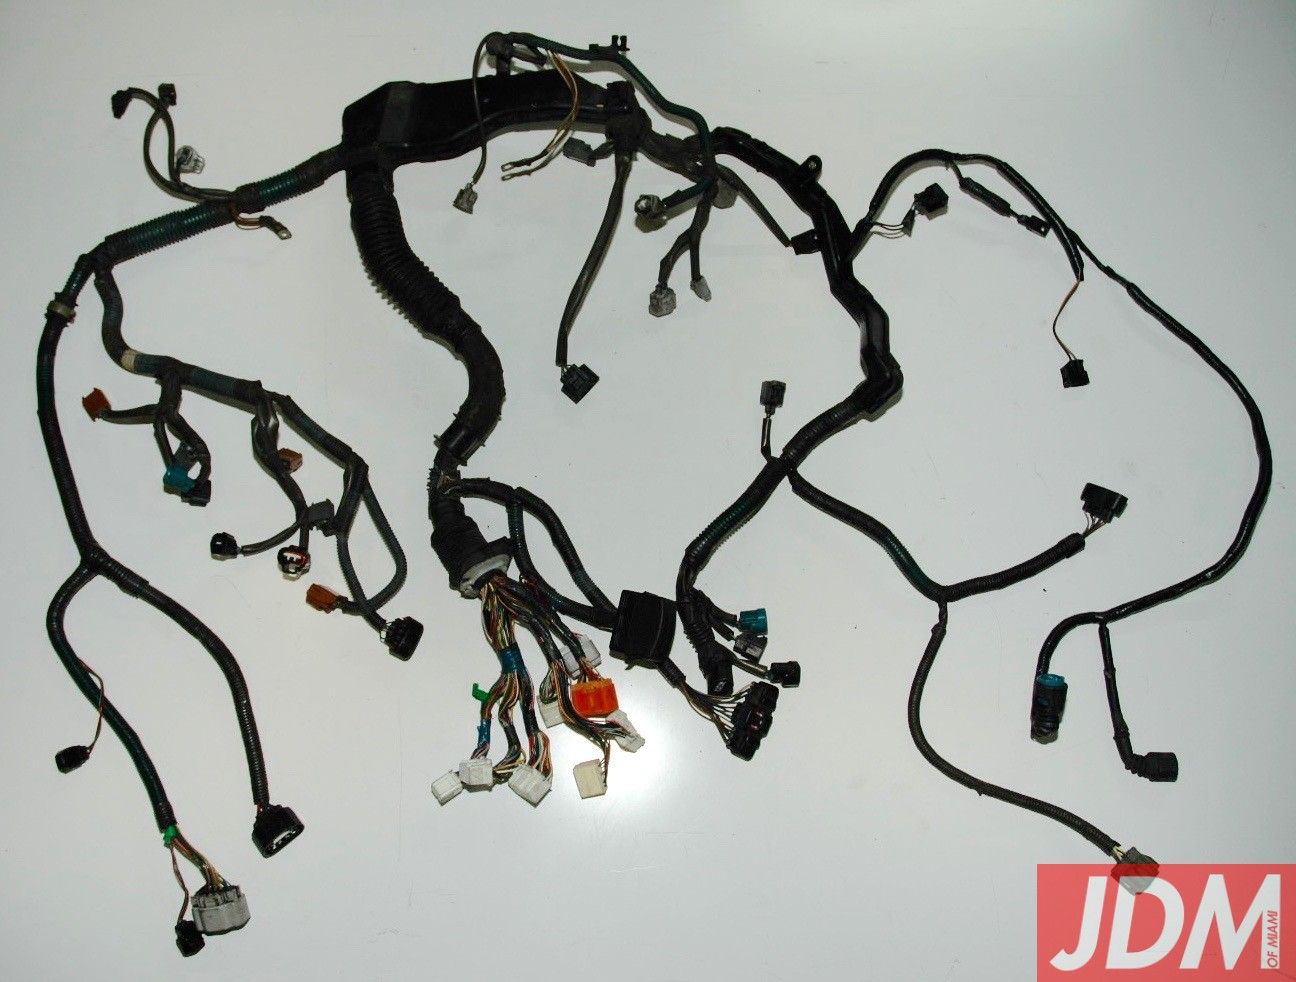 Wiring Engine At Jdm Of Miami